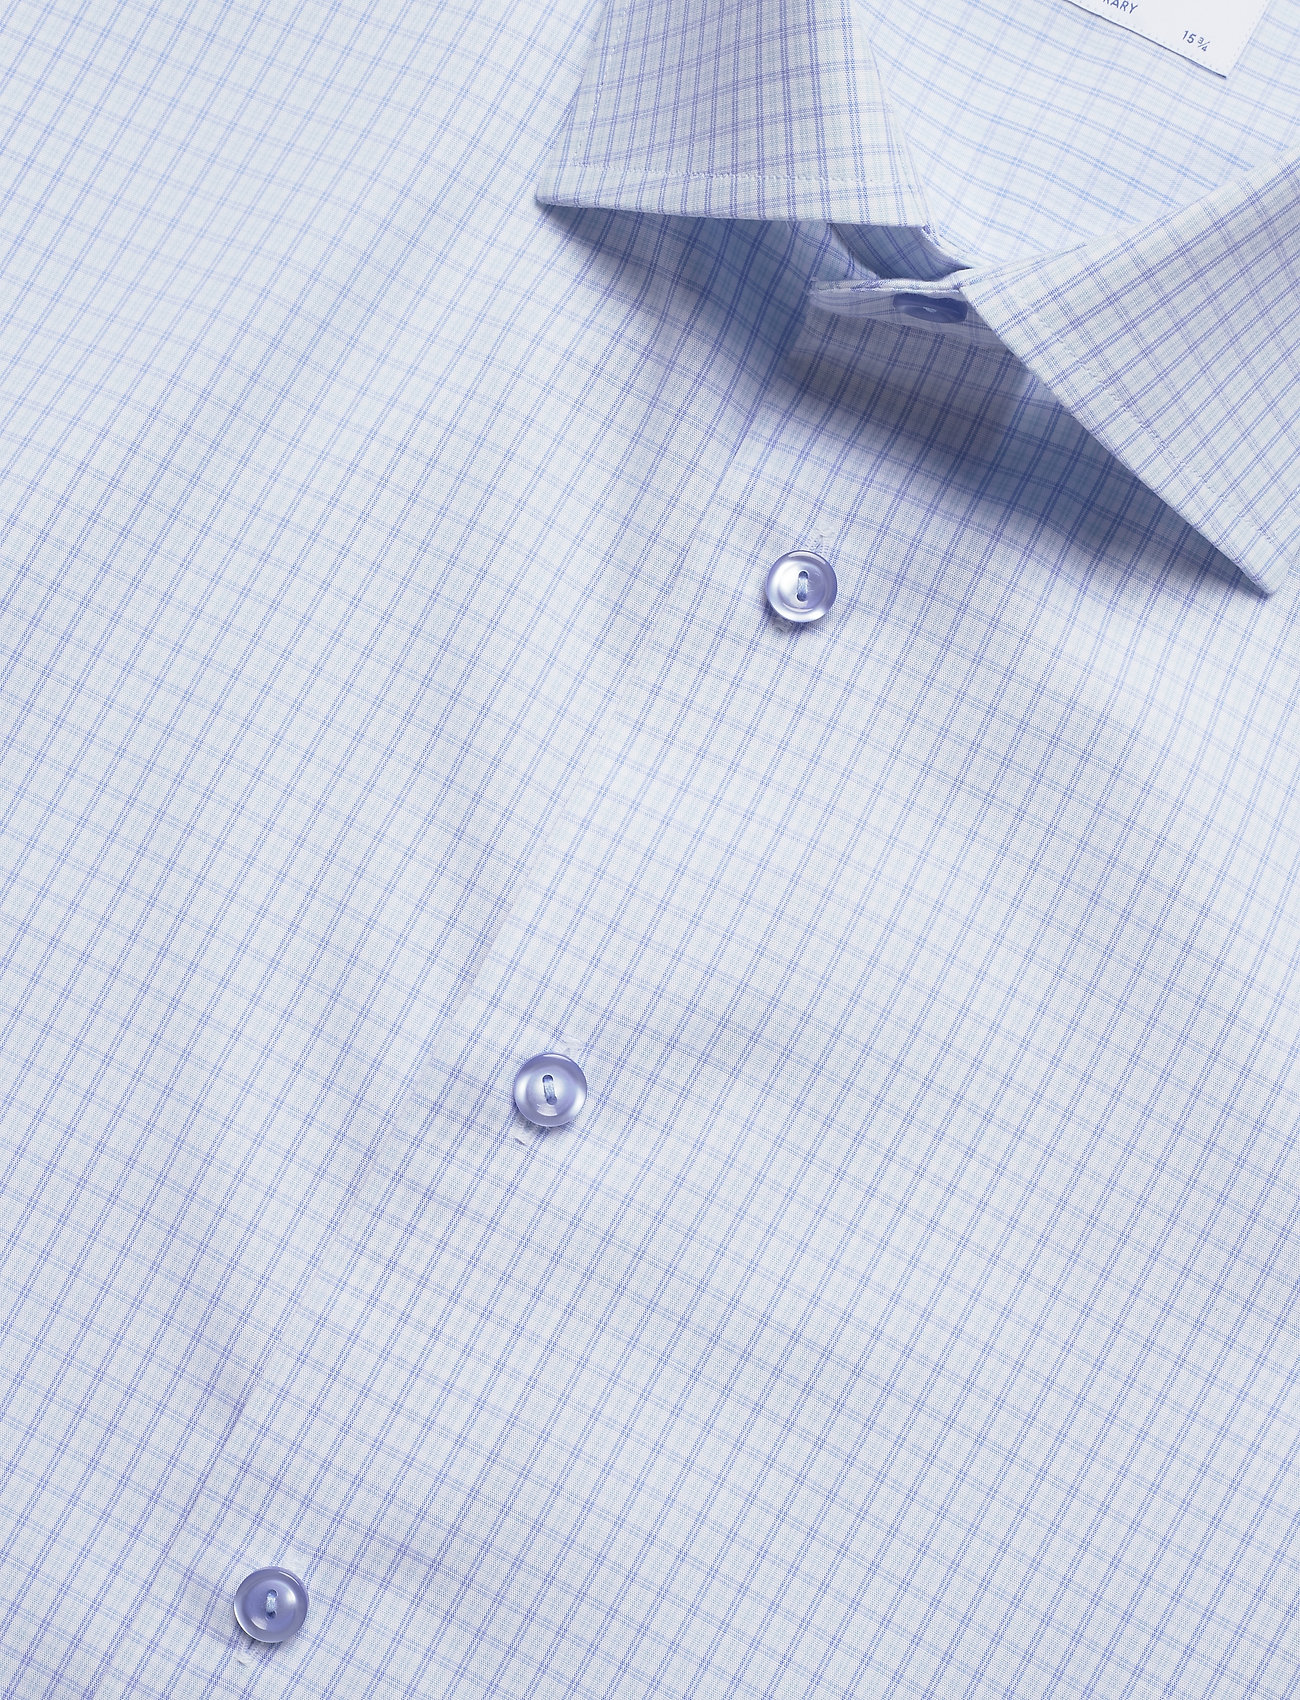 Eton Sky Blue & Green Checked Poplin Shirt - Skjorter BLUE - Menn Klær